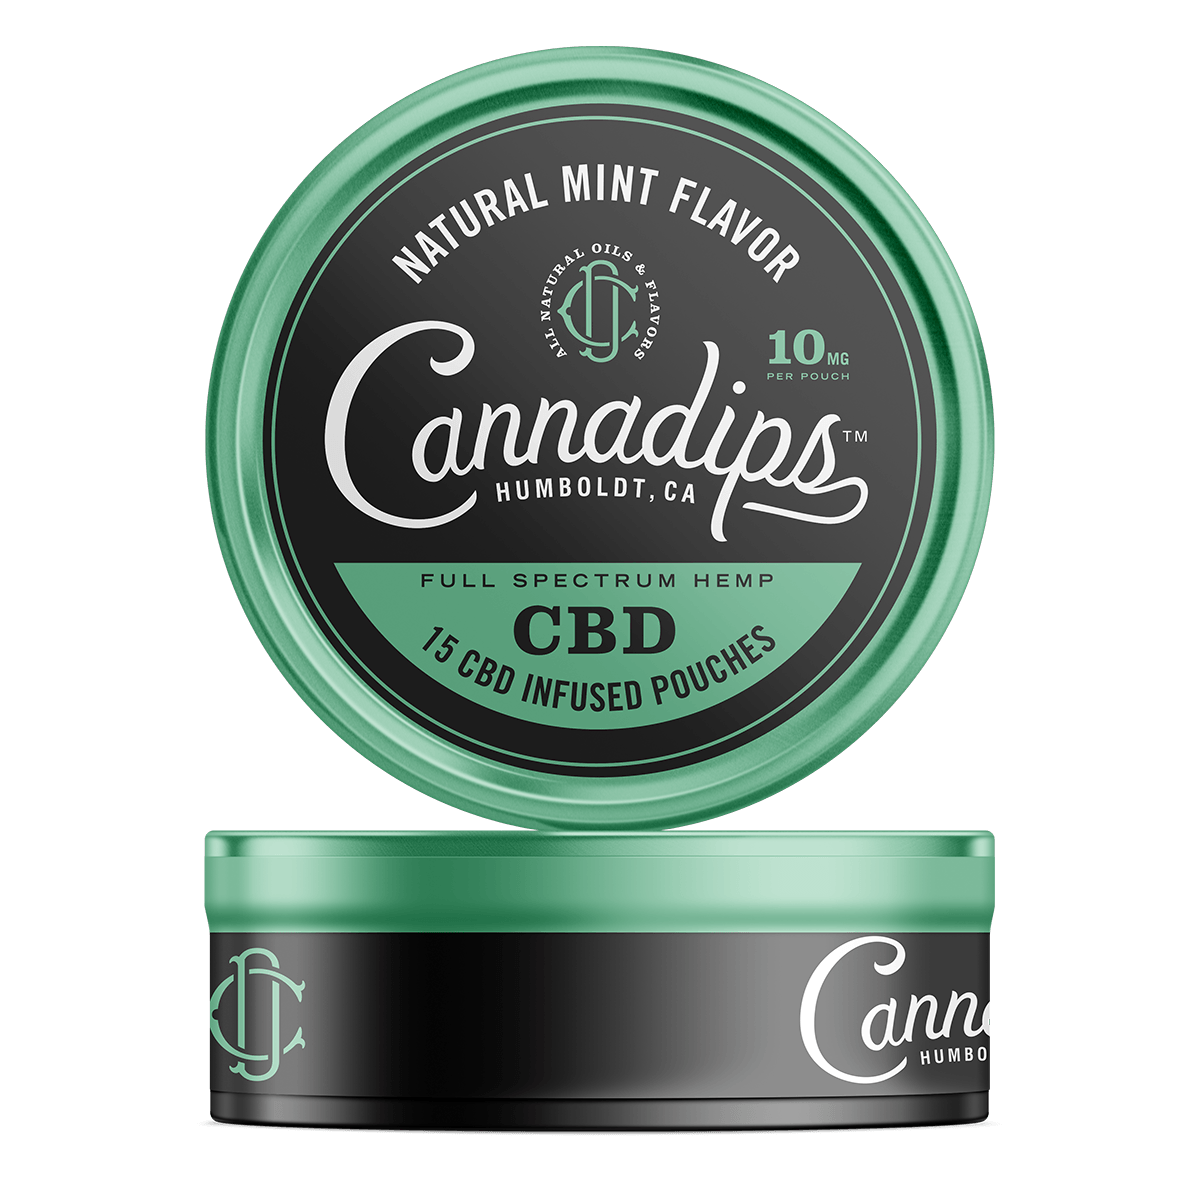 Nartural Mint 150mg CBD Cannadips